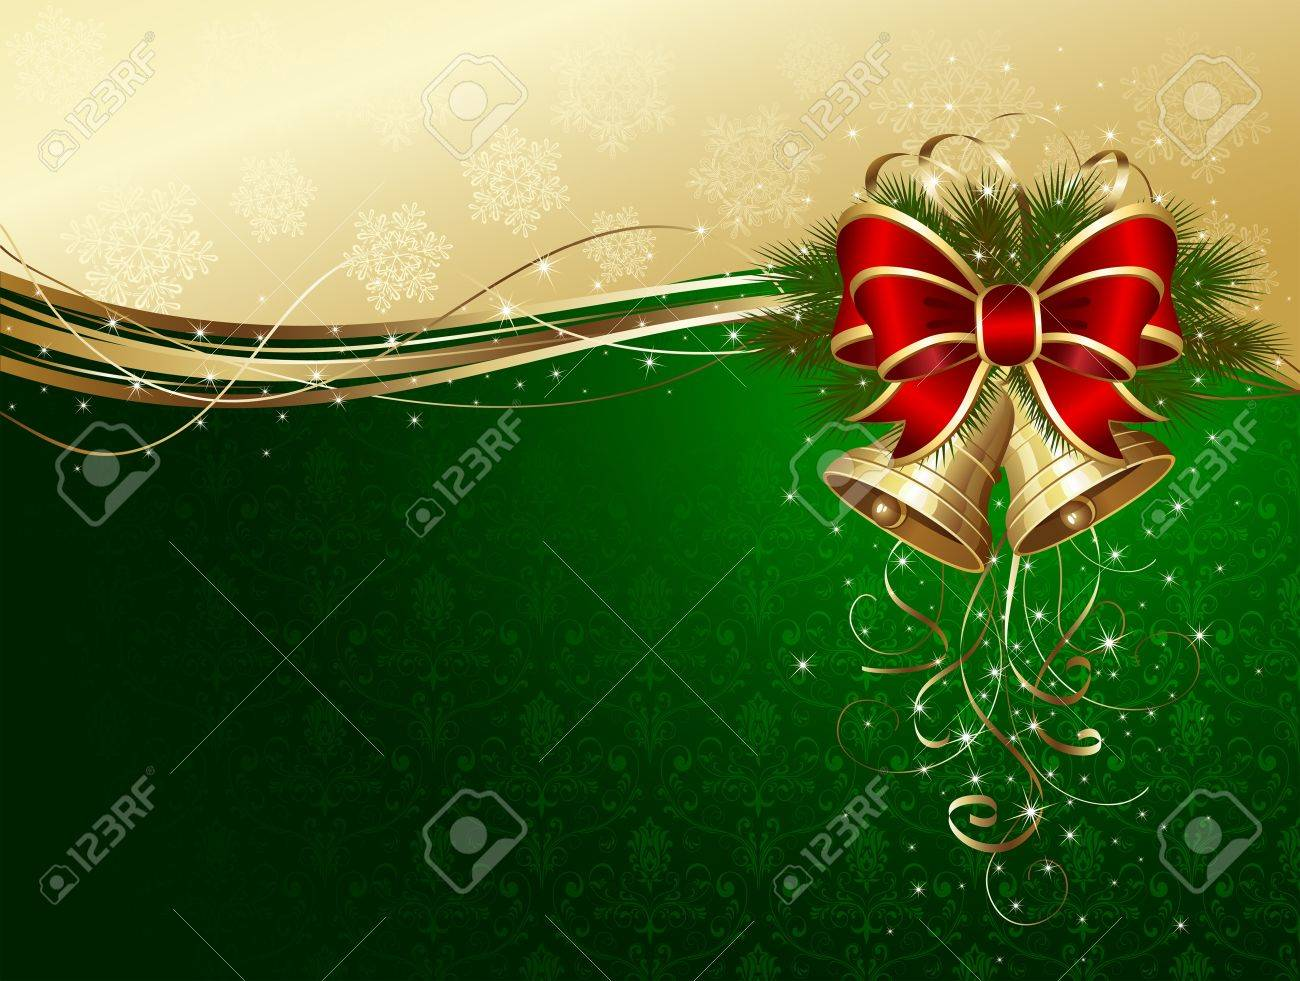 Christmas background with bells, bow, stars and snowflakes, illustration Stock Vector - 11373352